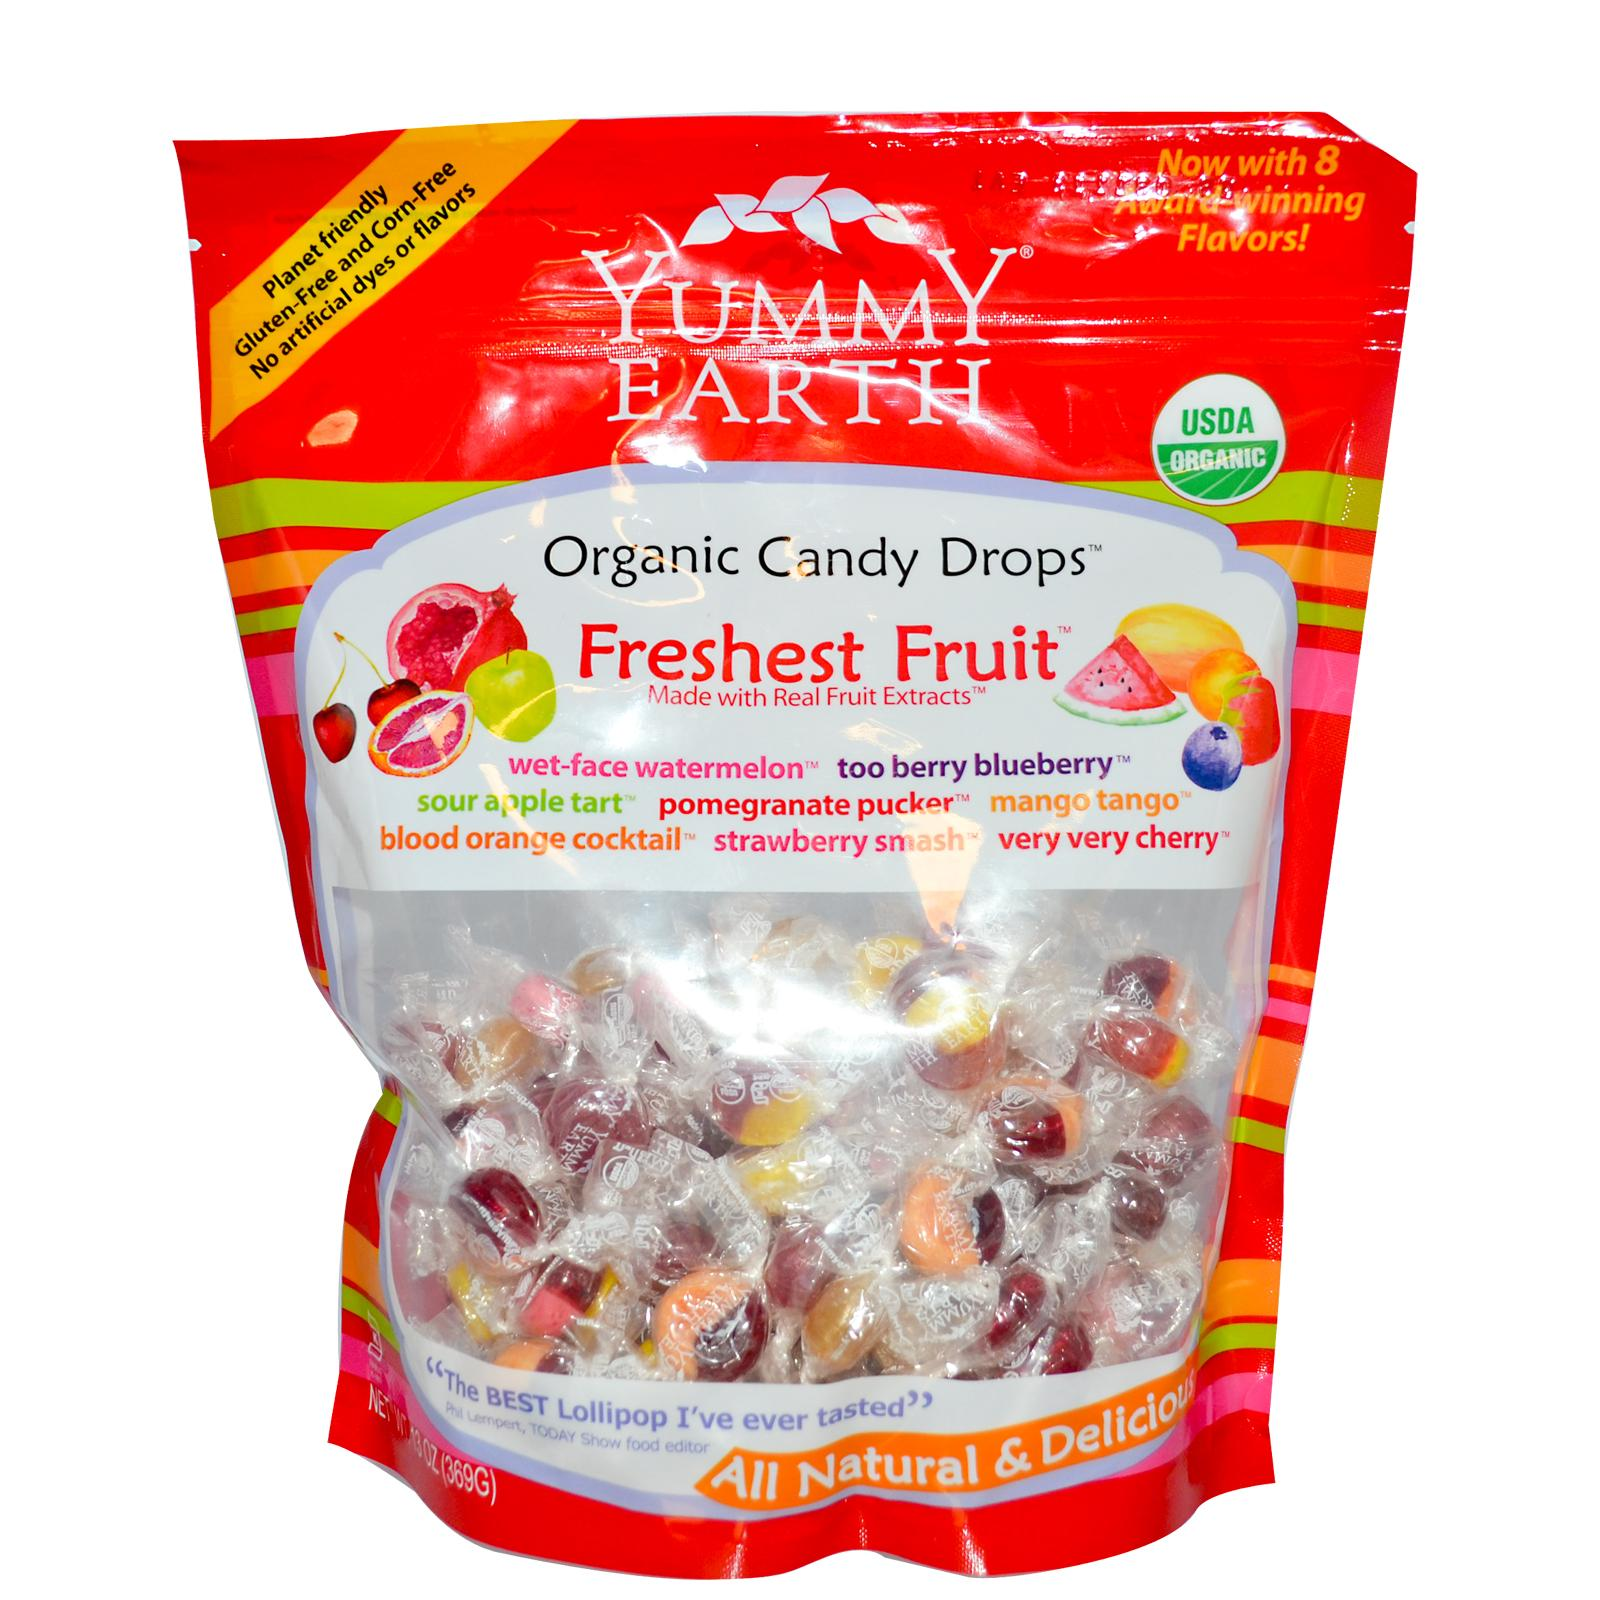 Леденцы Yummy Earth, Organic Candy Drops, Freshest Fruit